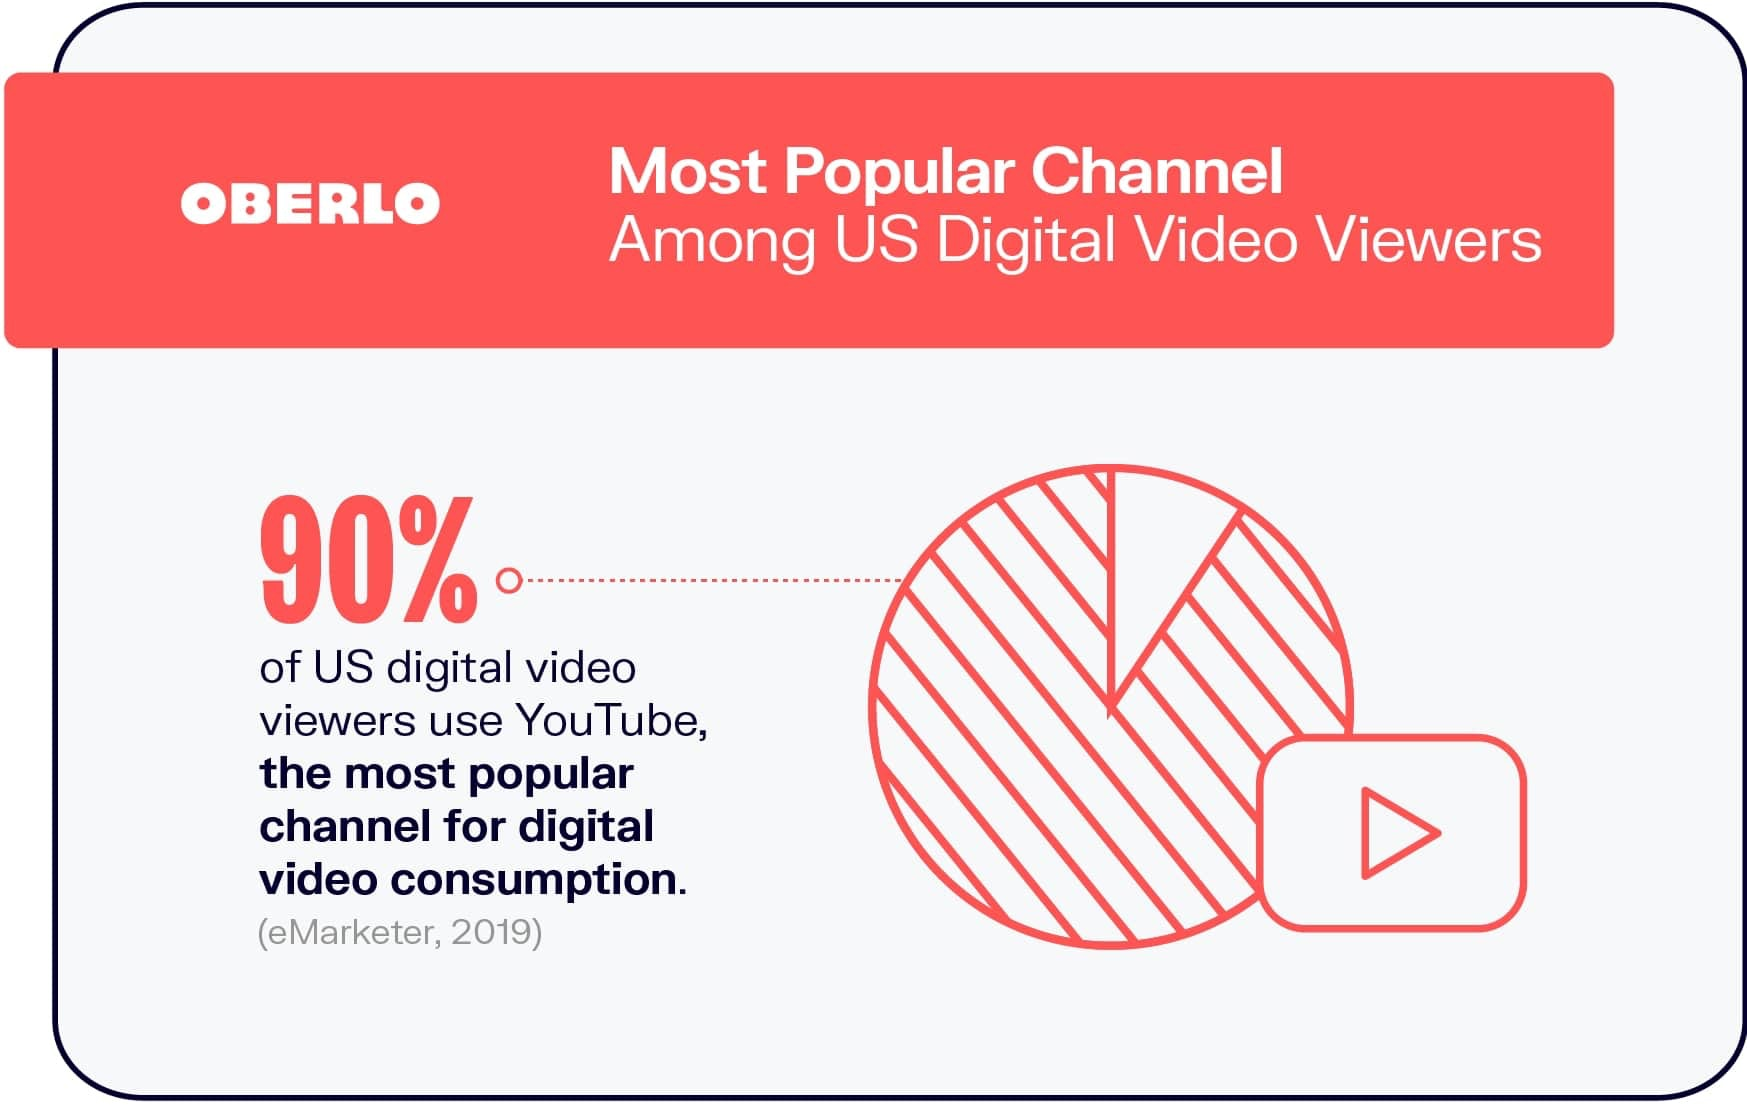 Most Popular Channel Among US Digital Video Viewers